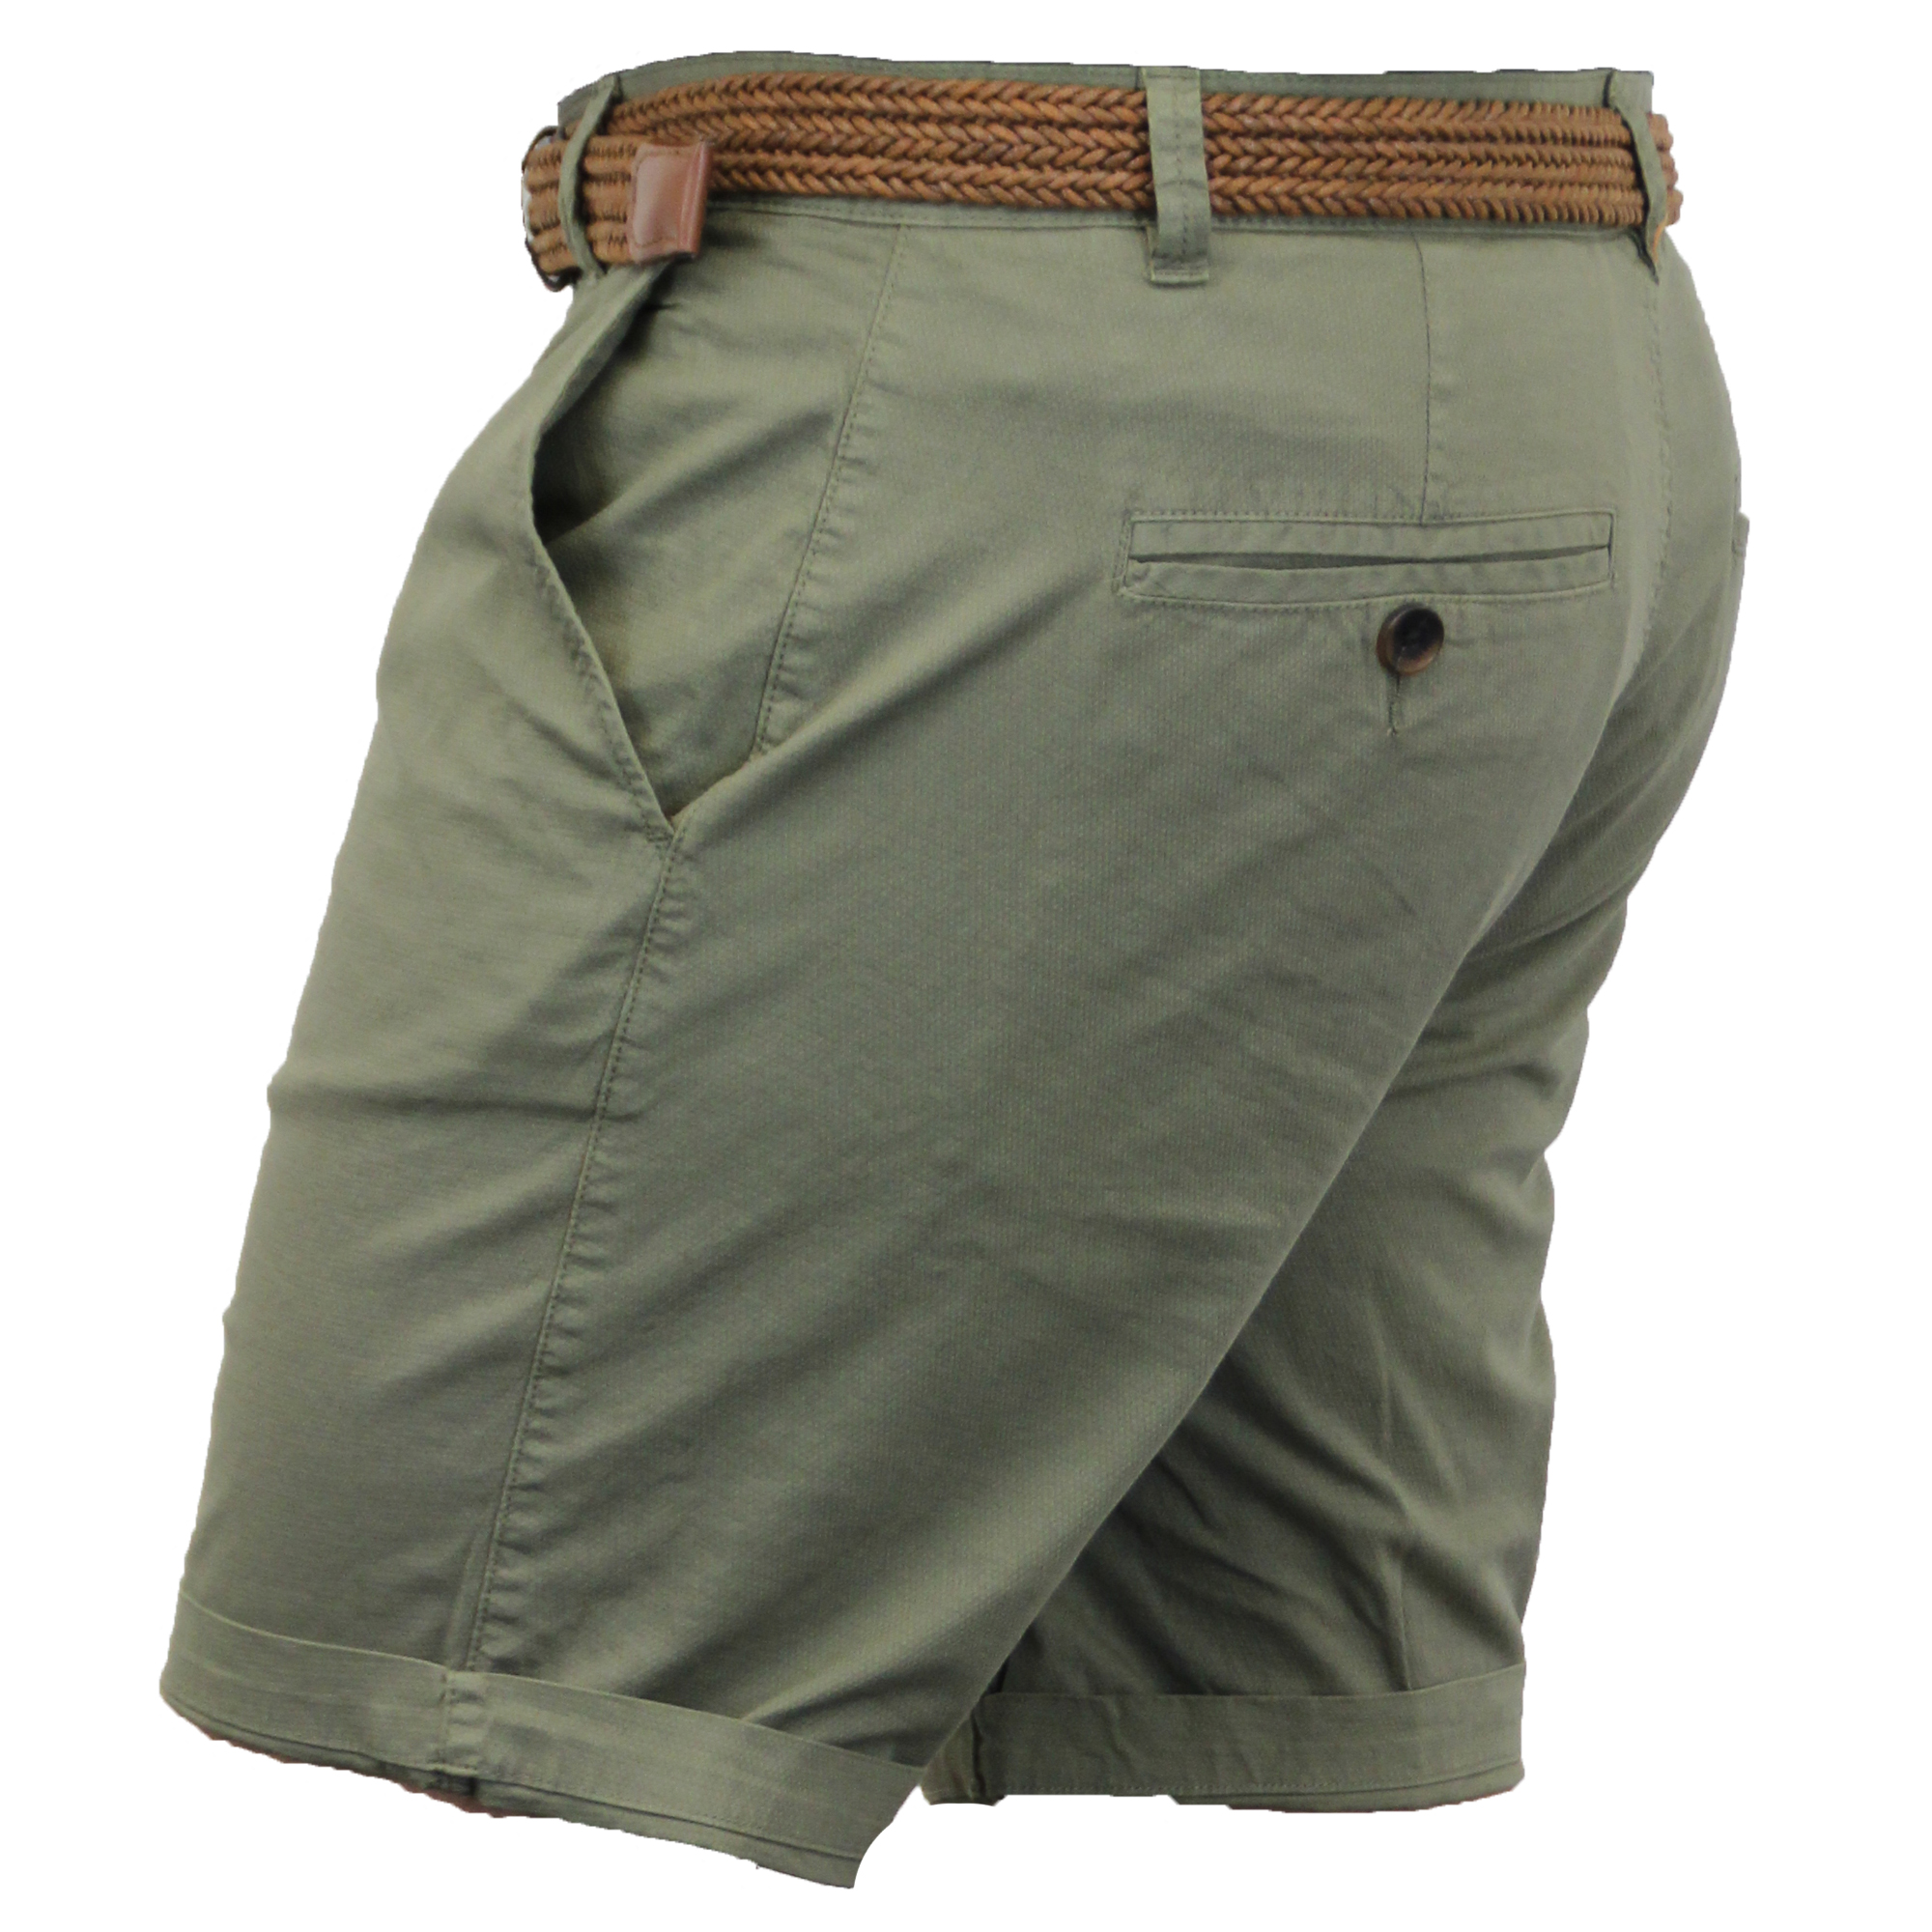 Mens-Chino-Shorts-Threadbare-Belted-Westace-Pants-Knee-Length-Roll-Up-Summer-New thumbnail 7